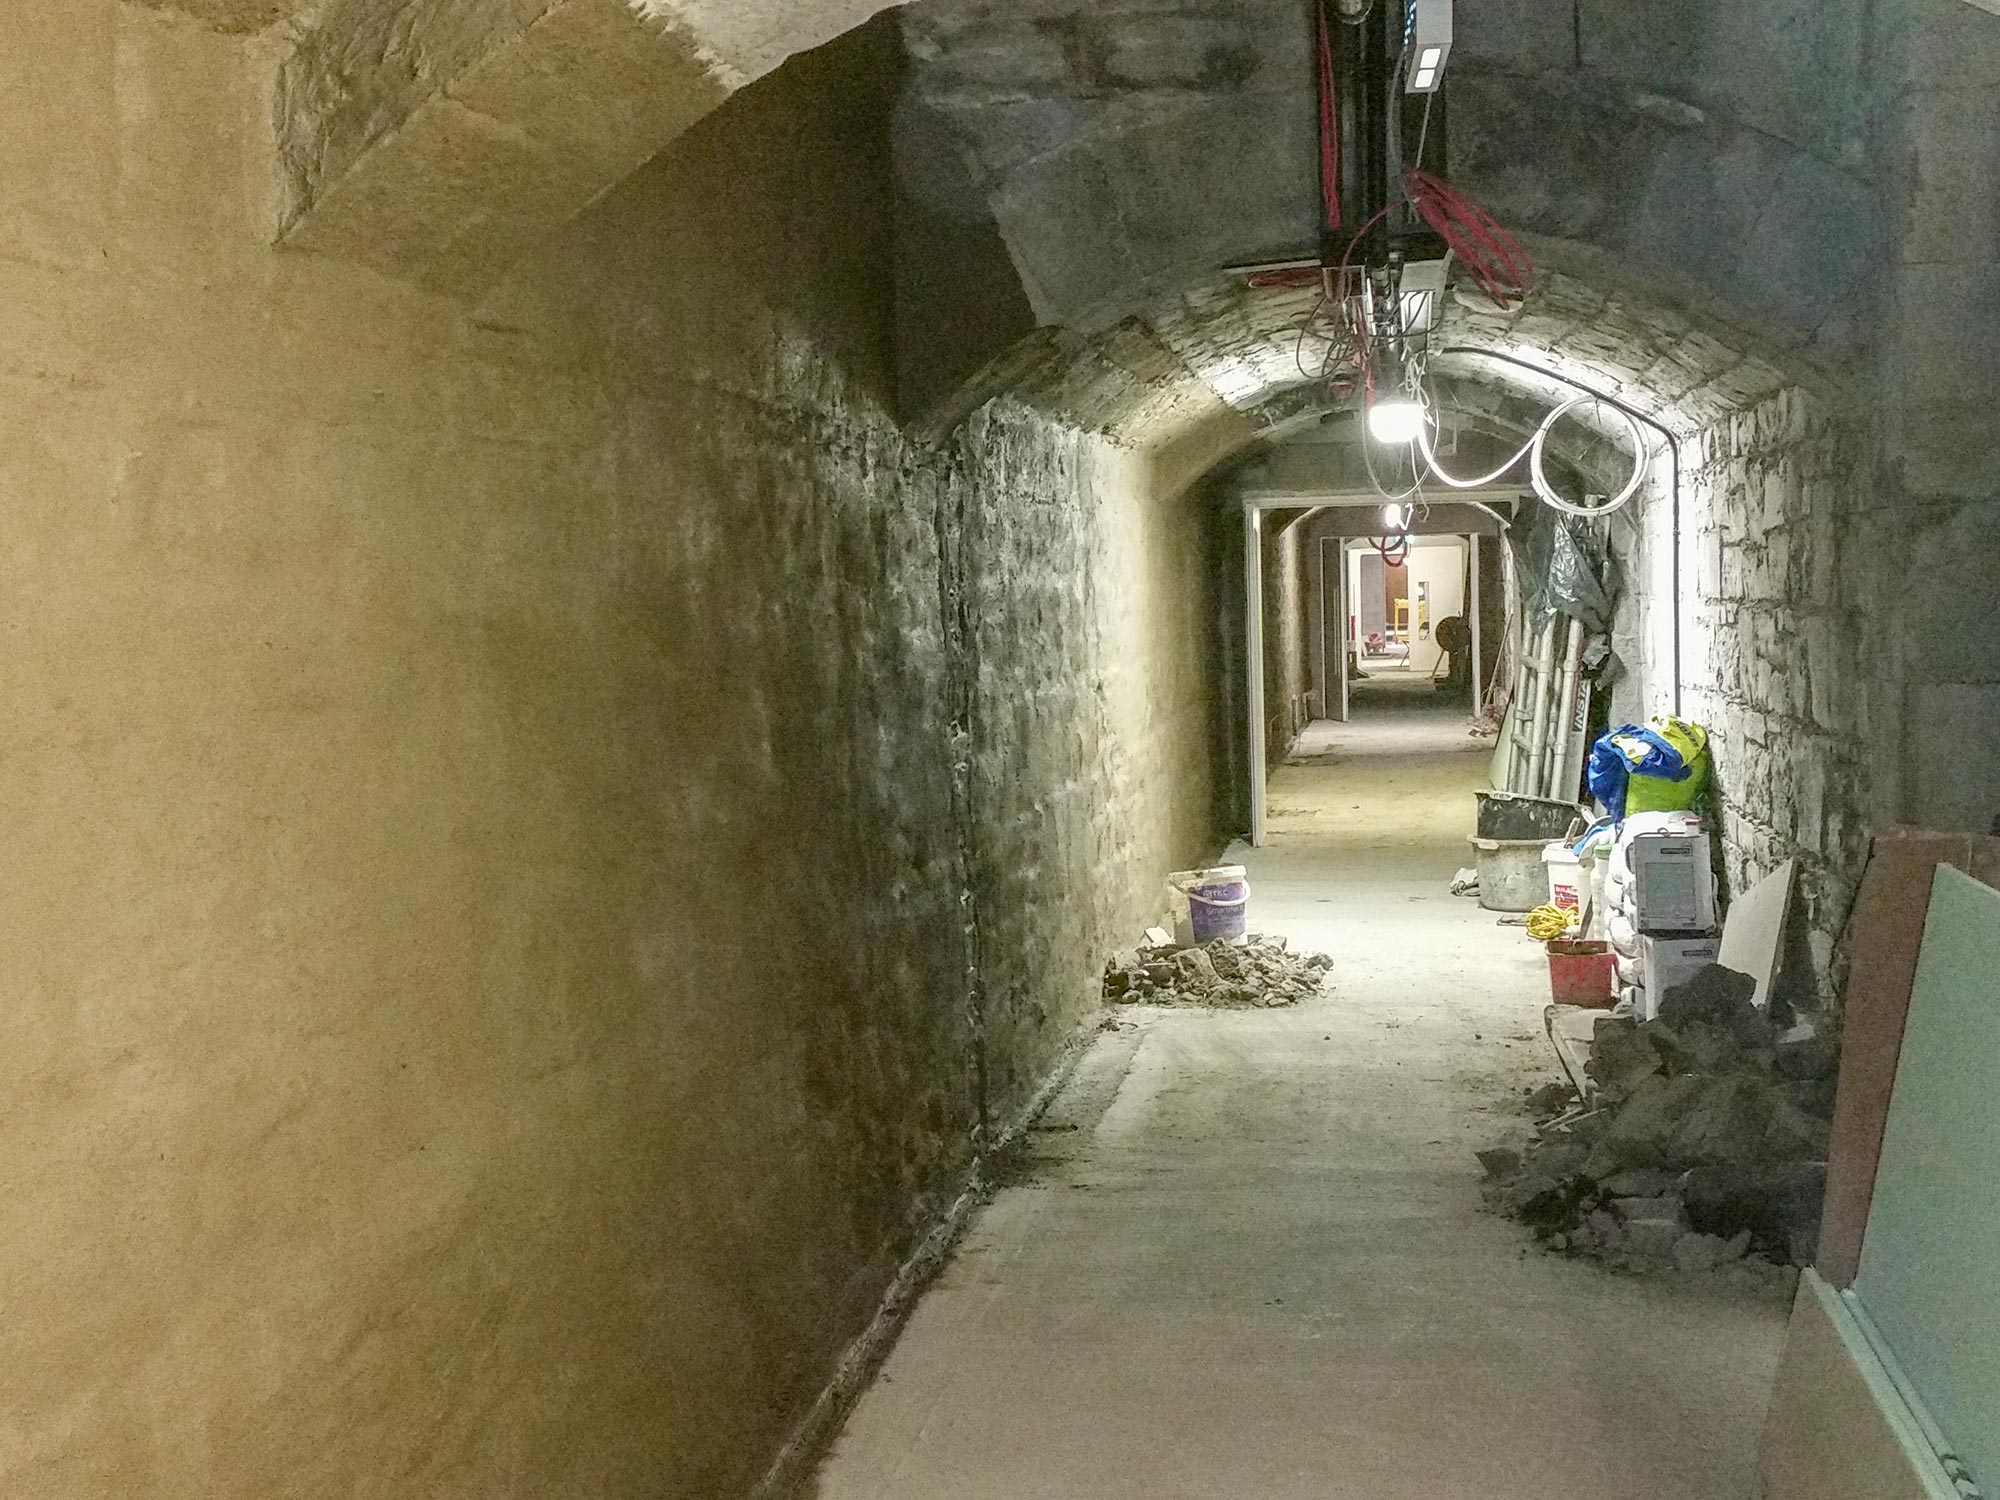 arches dkb construction conservation renovation services galway ireland